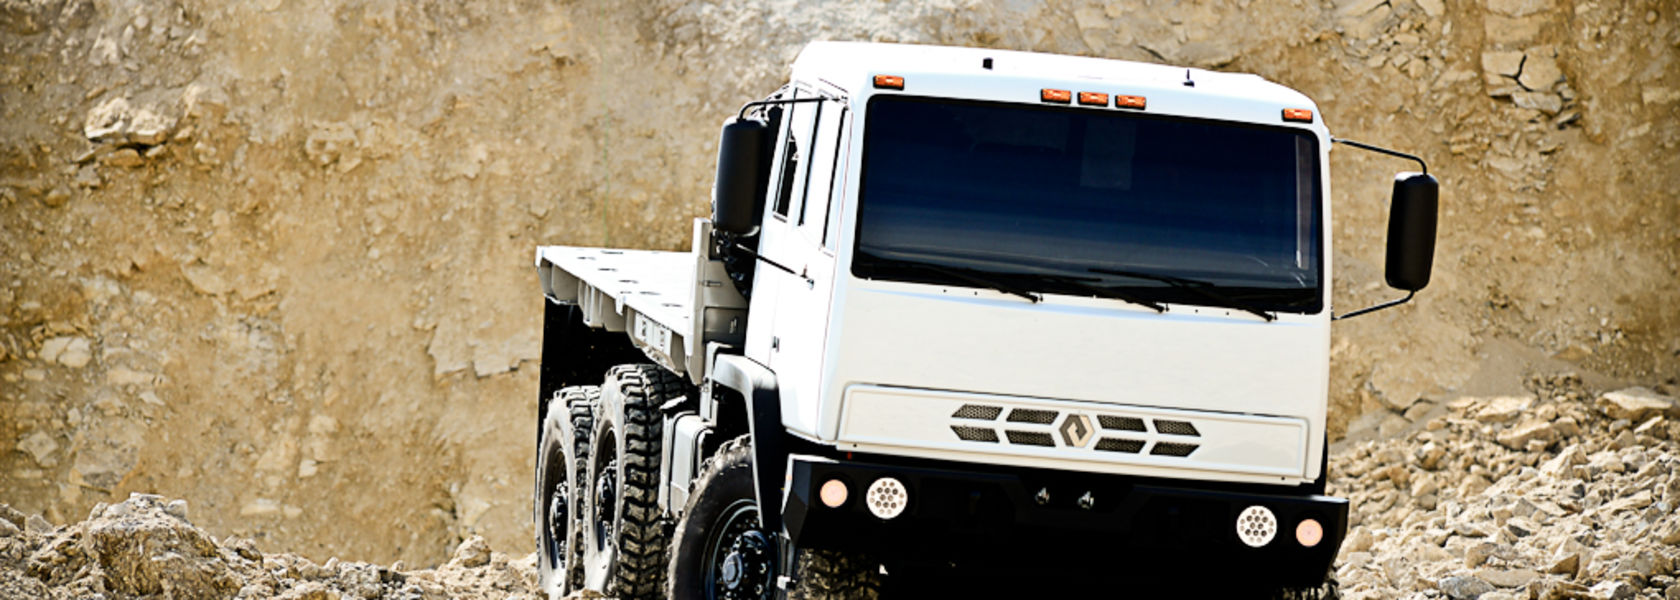 Acela Monterra trucks available in Canada through Roughrider